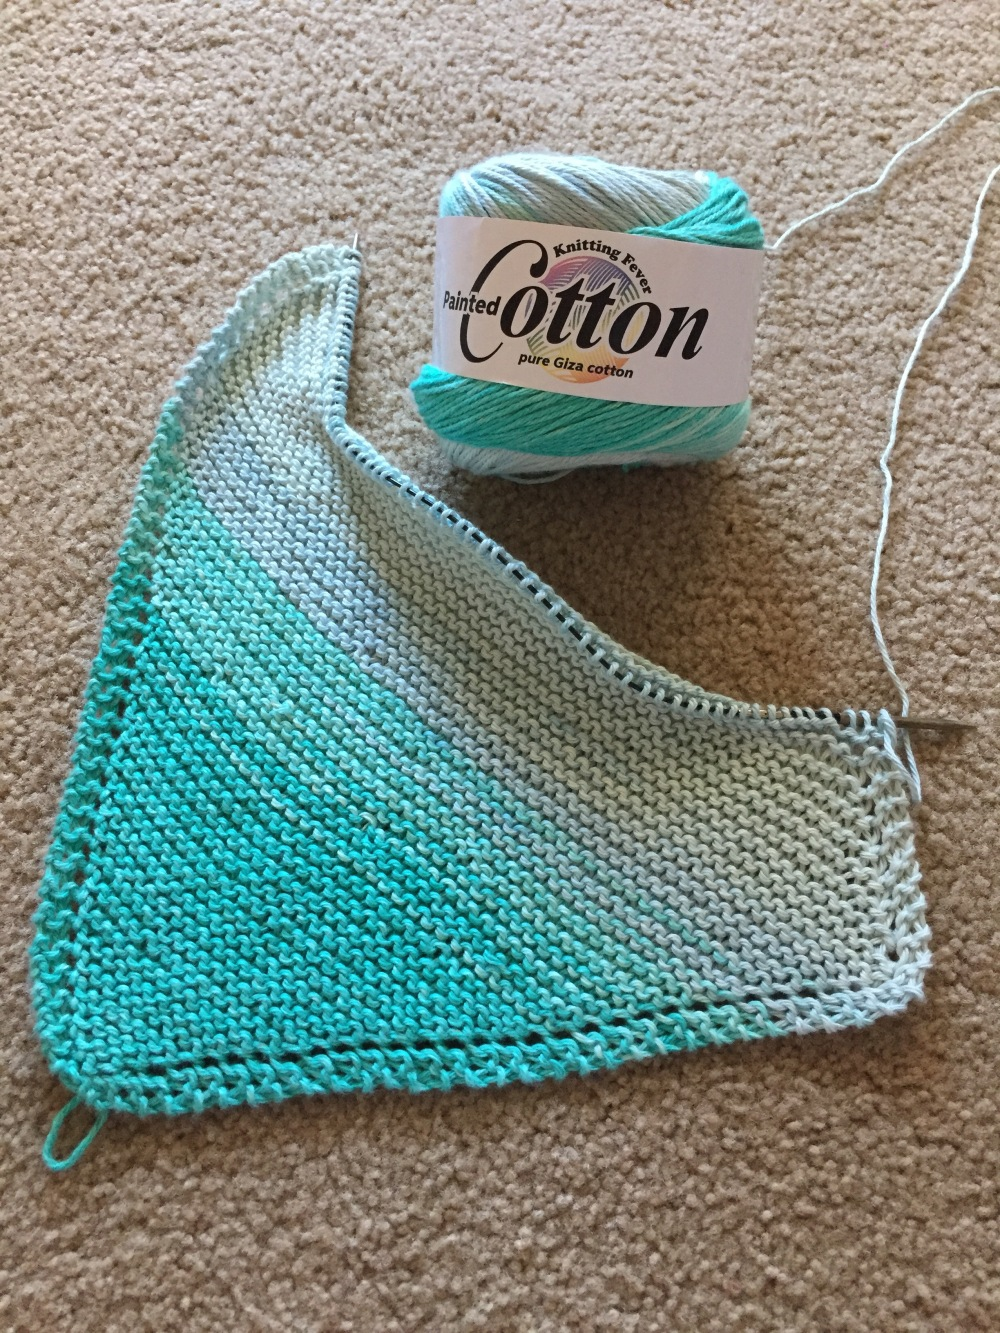 New Yarn: Knitting Fever Painted Cotton – The Yarnologue Blog